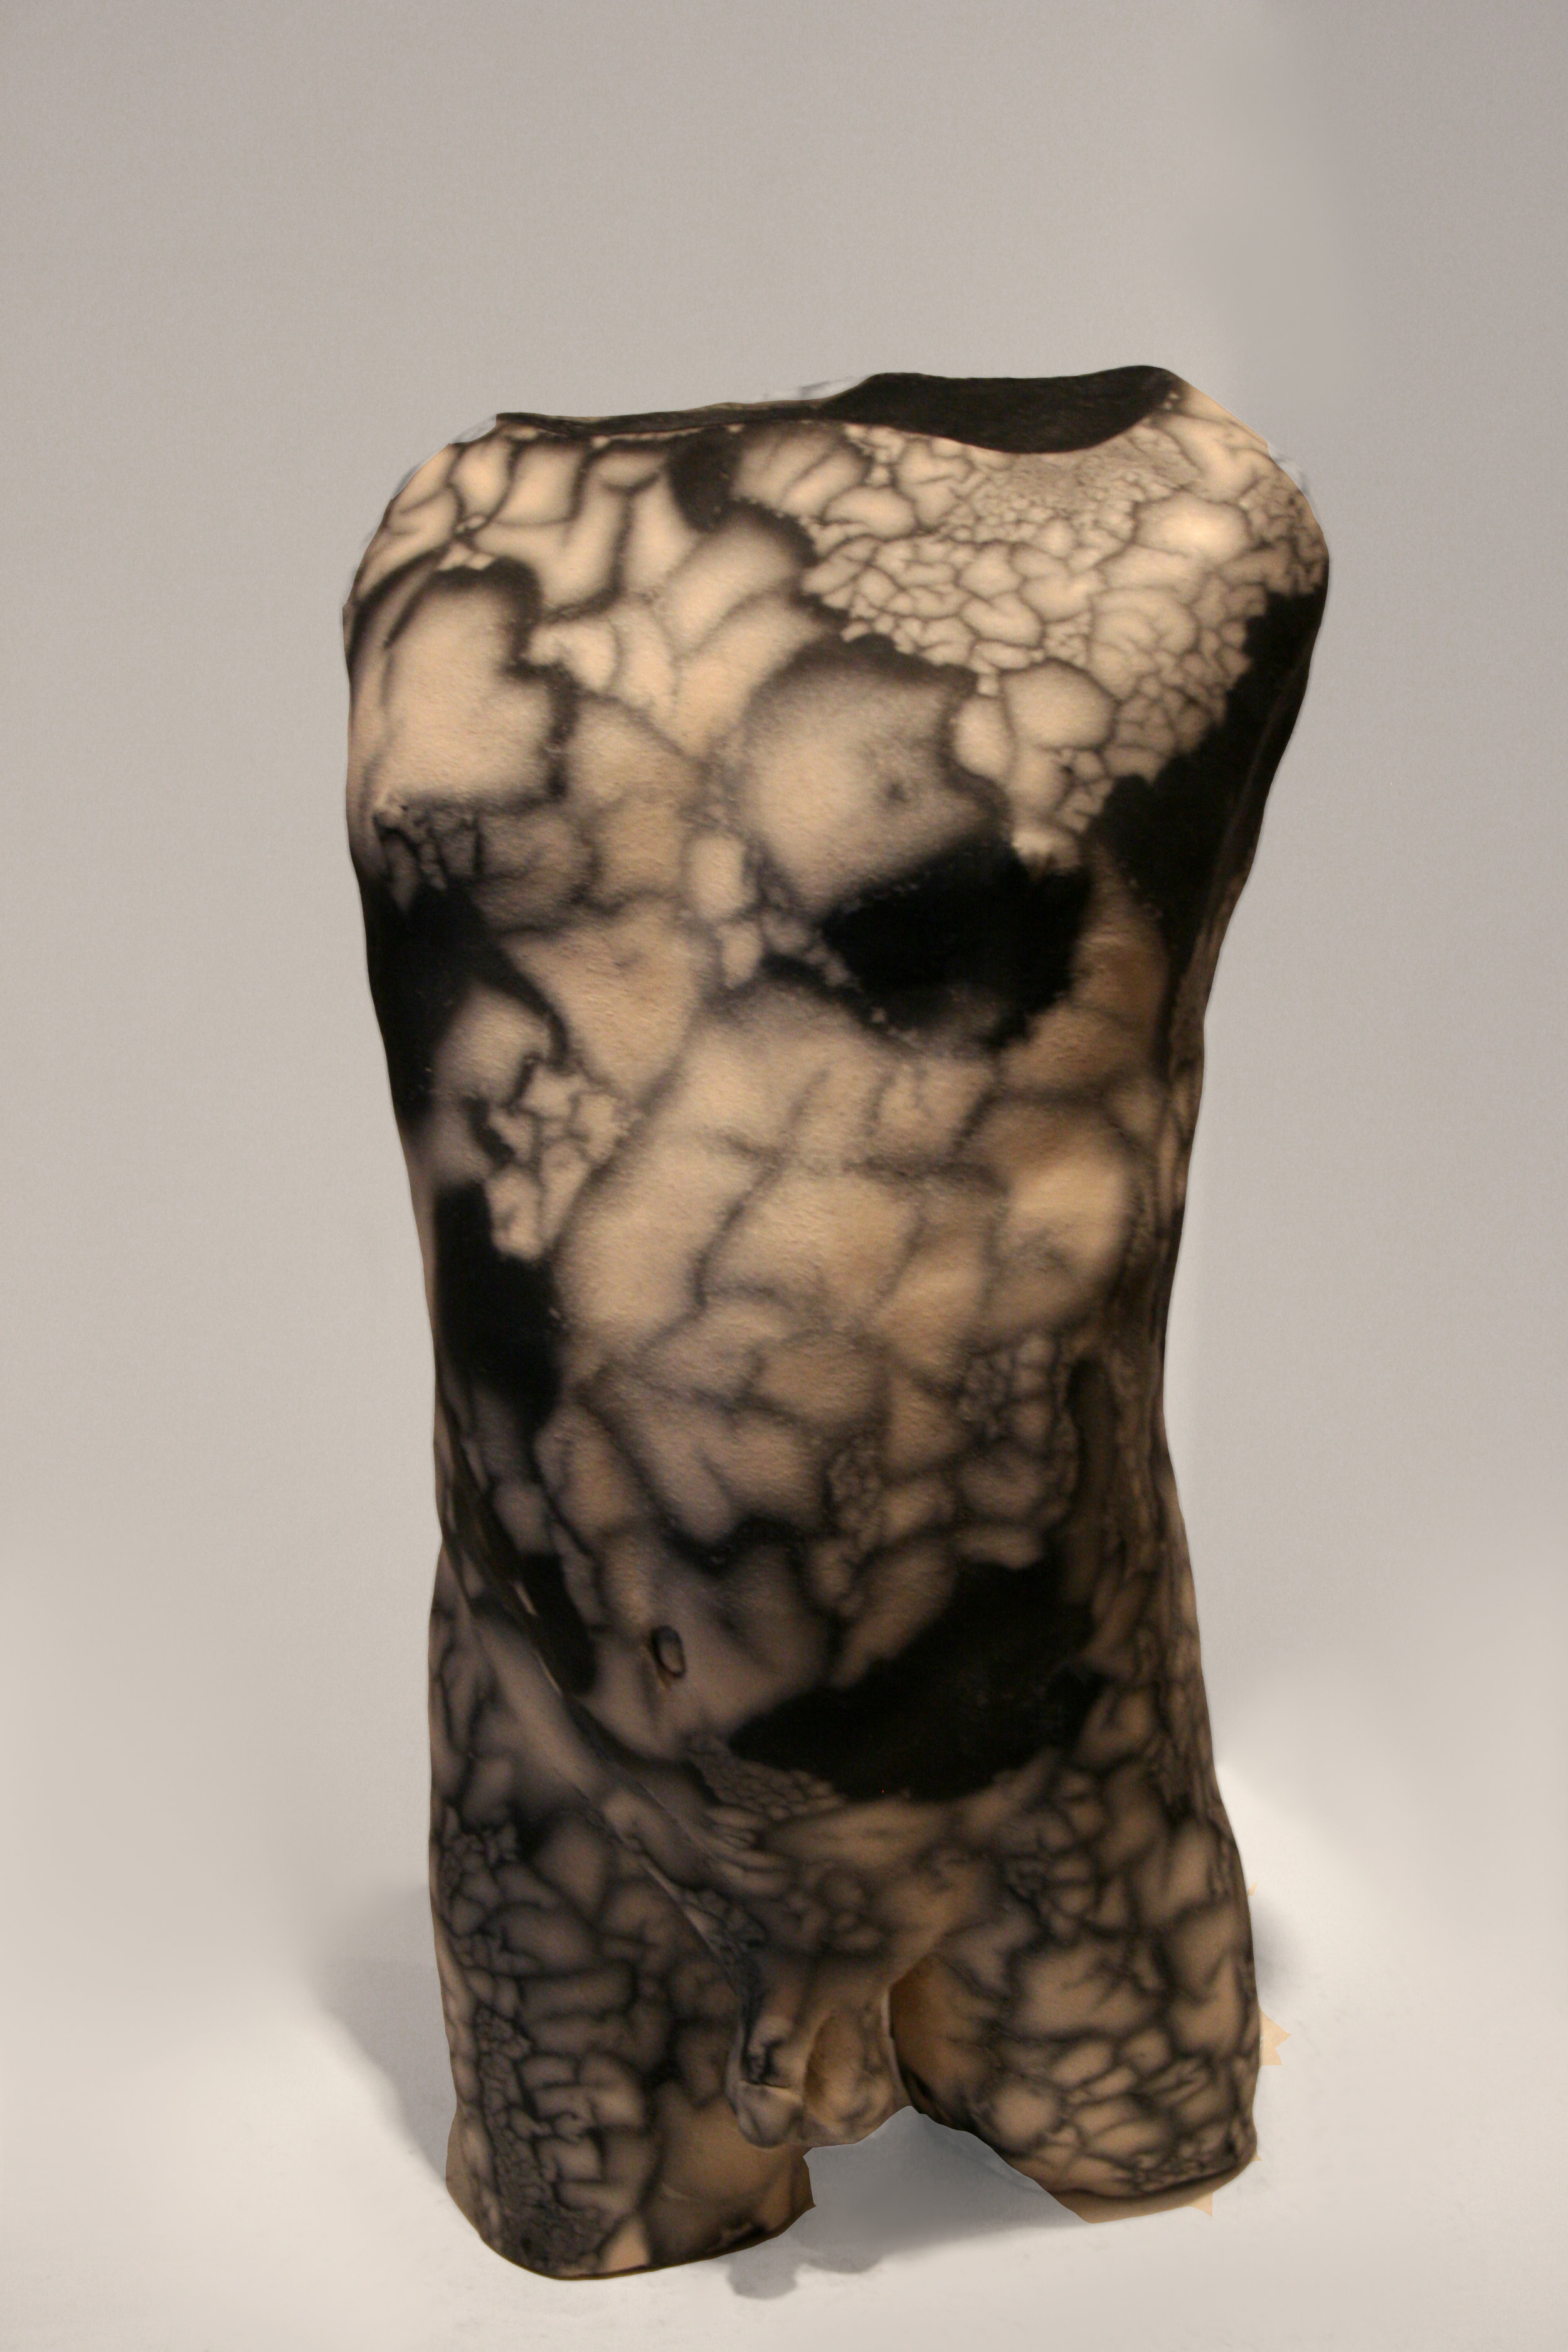 "Here   Raku-Fired Ceramic  12"" x 6"" x 7""  $1,000   Click to Inquire"